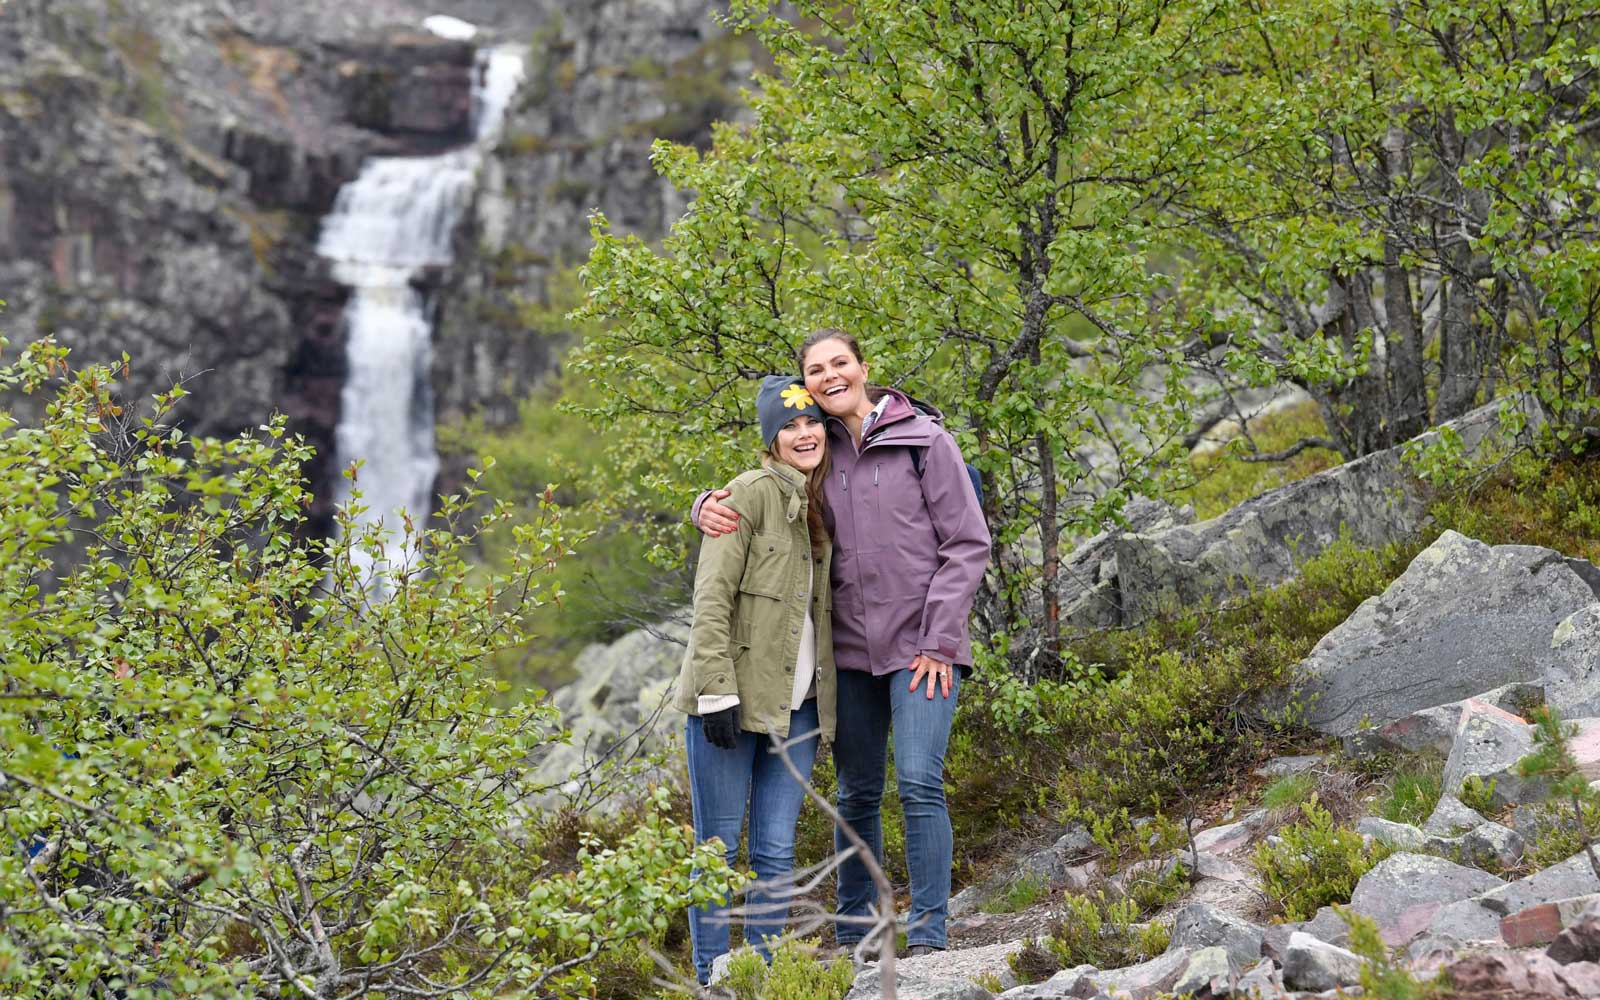 Princess Victoria of Sweden Just Reached Goal of Hiking All 25 Provinces in the Country